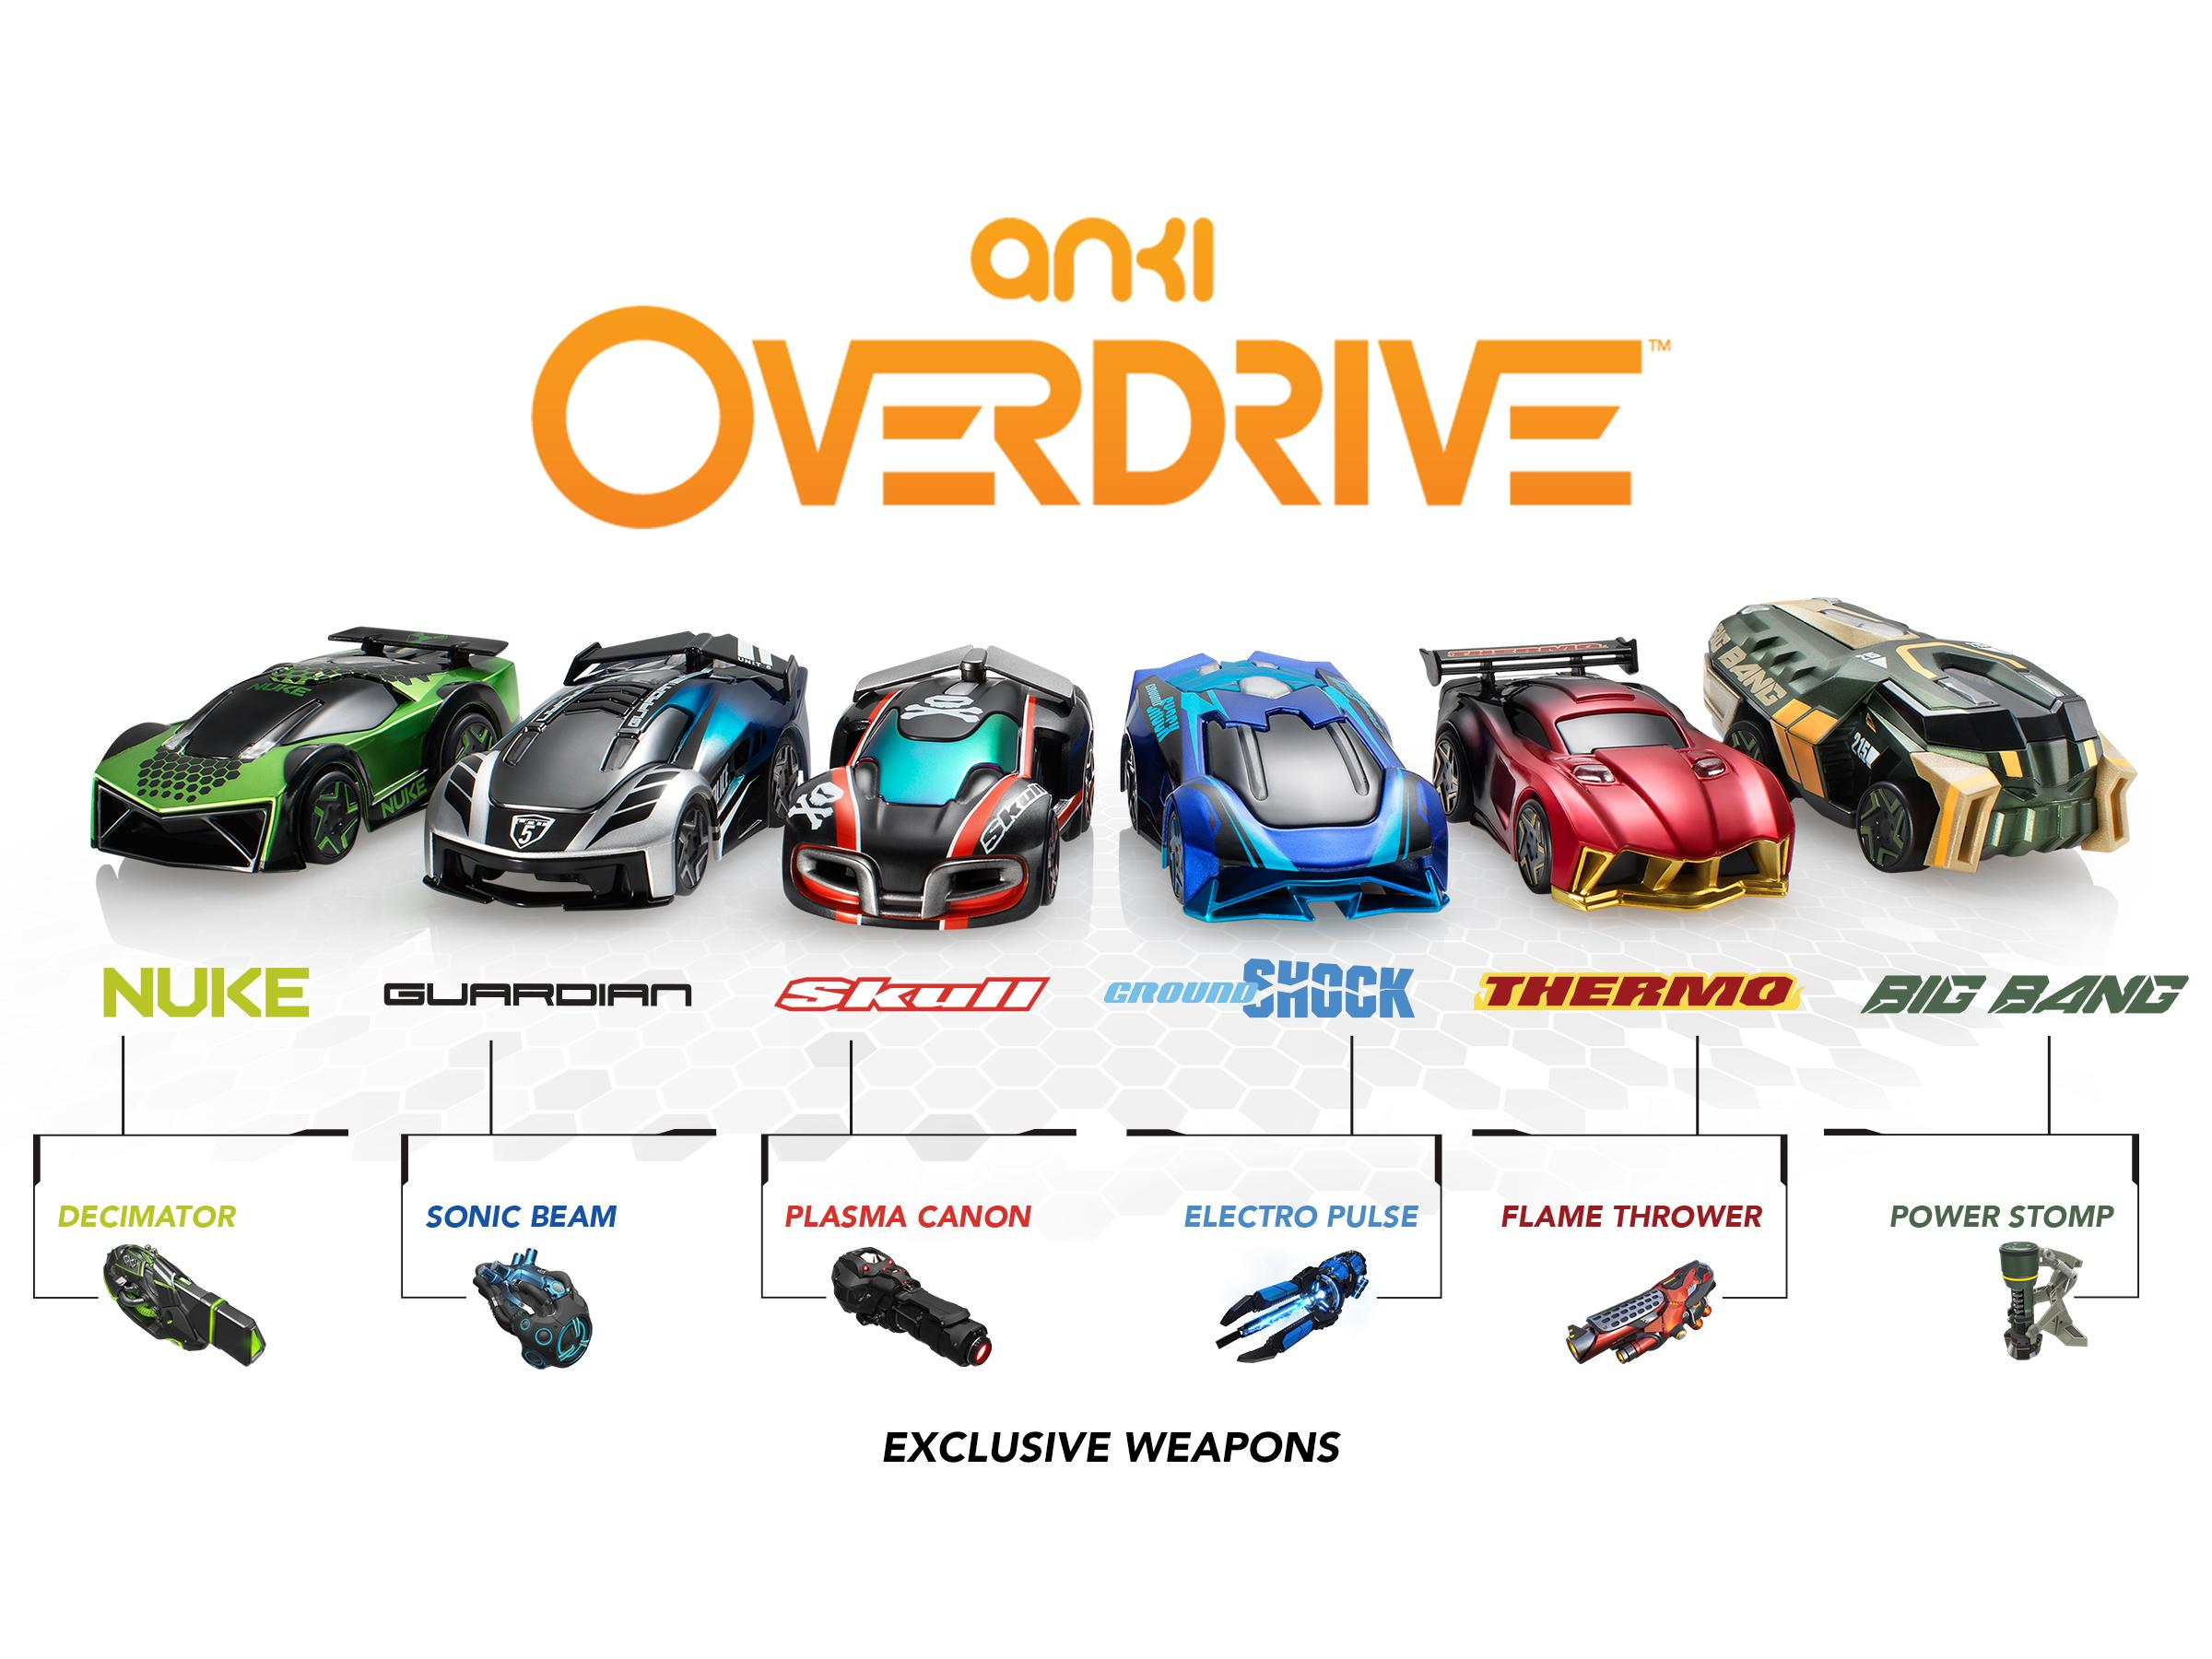 Anki OVERDRIVE Cars and Weapons